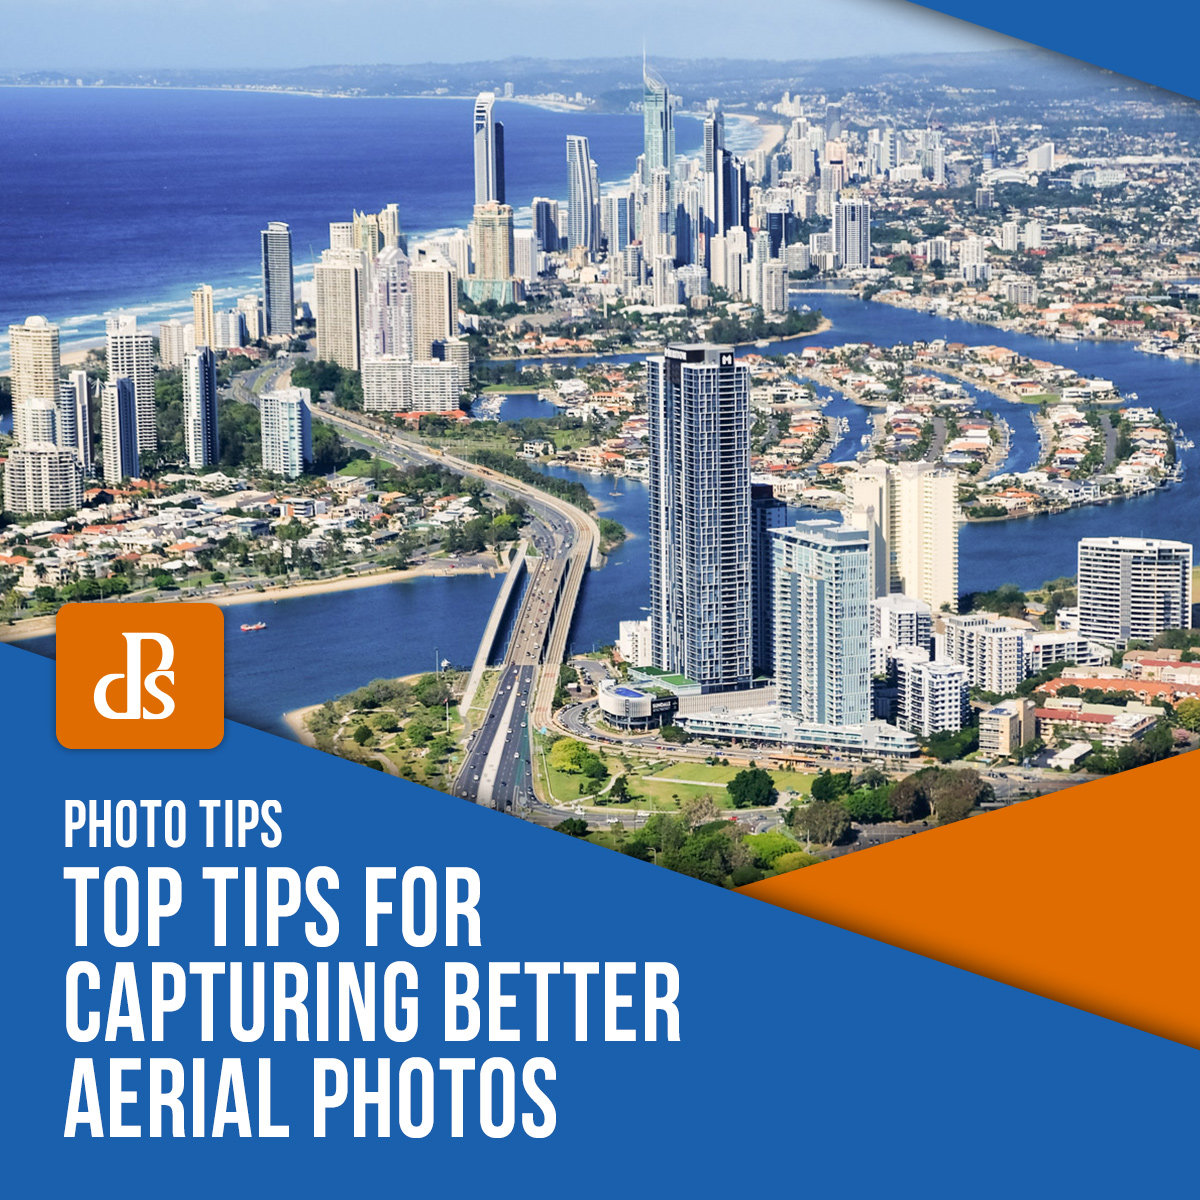 dps-tips-better-aerial-photos